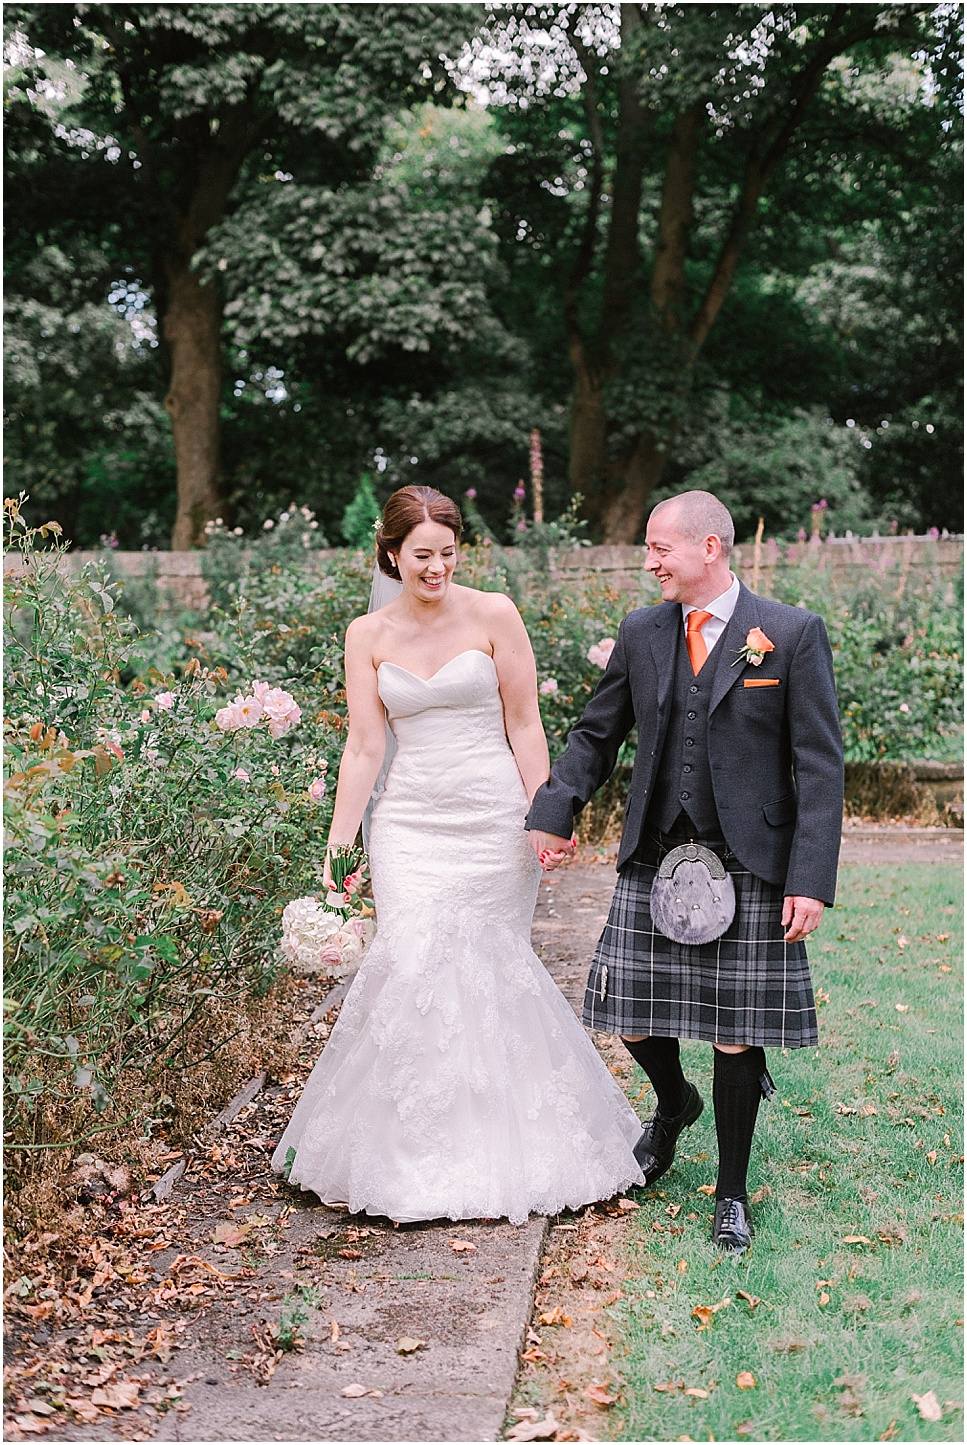 mareikemurray_wedding_photography_linlithgow_burgh_halls_058.jpg